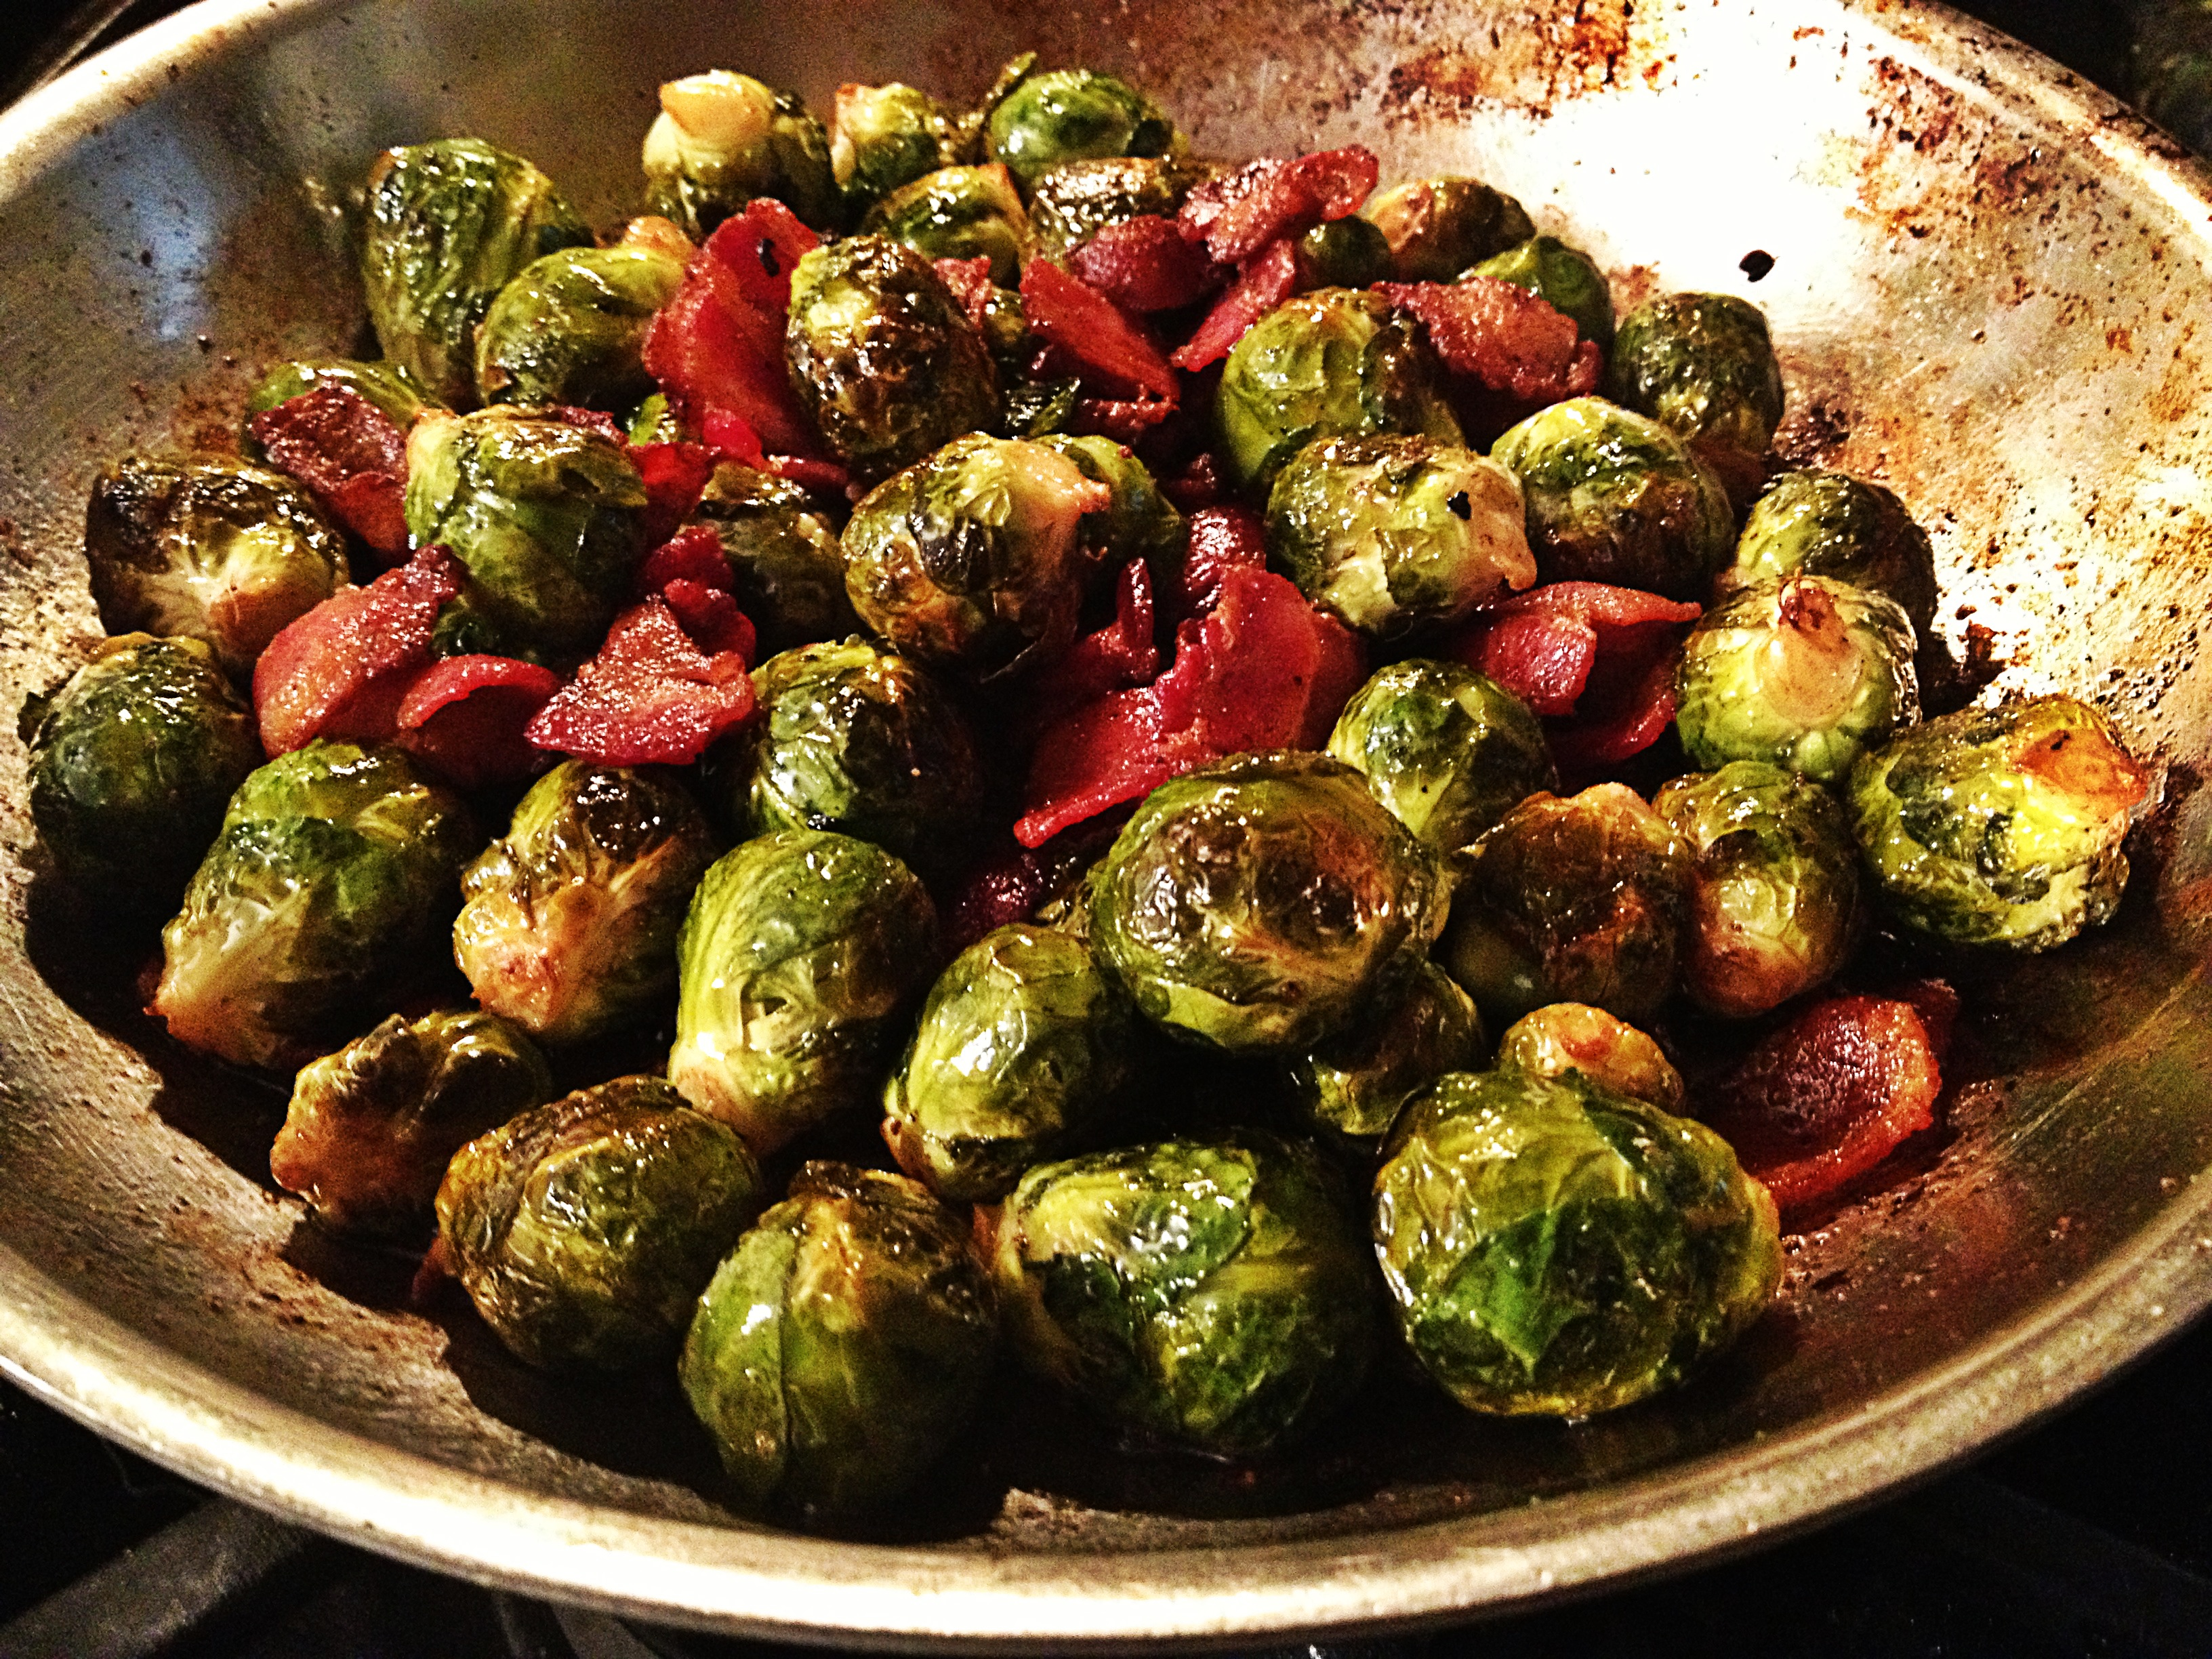 Caramelized Brussels Sprouts with a balsamic glaze | What ...